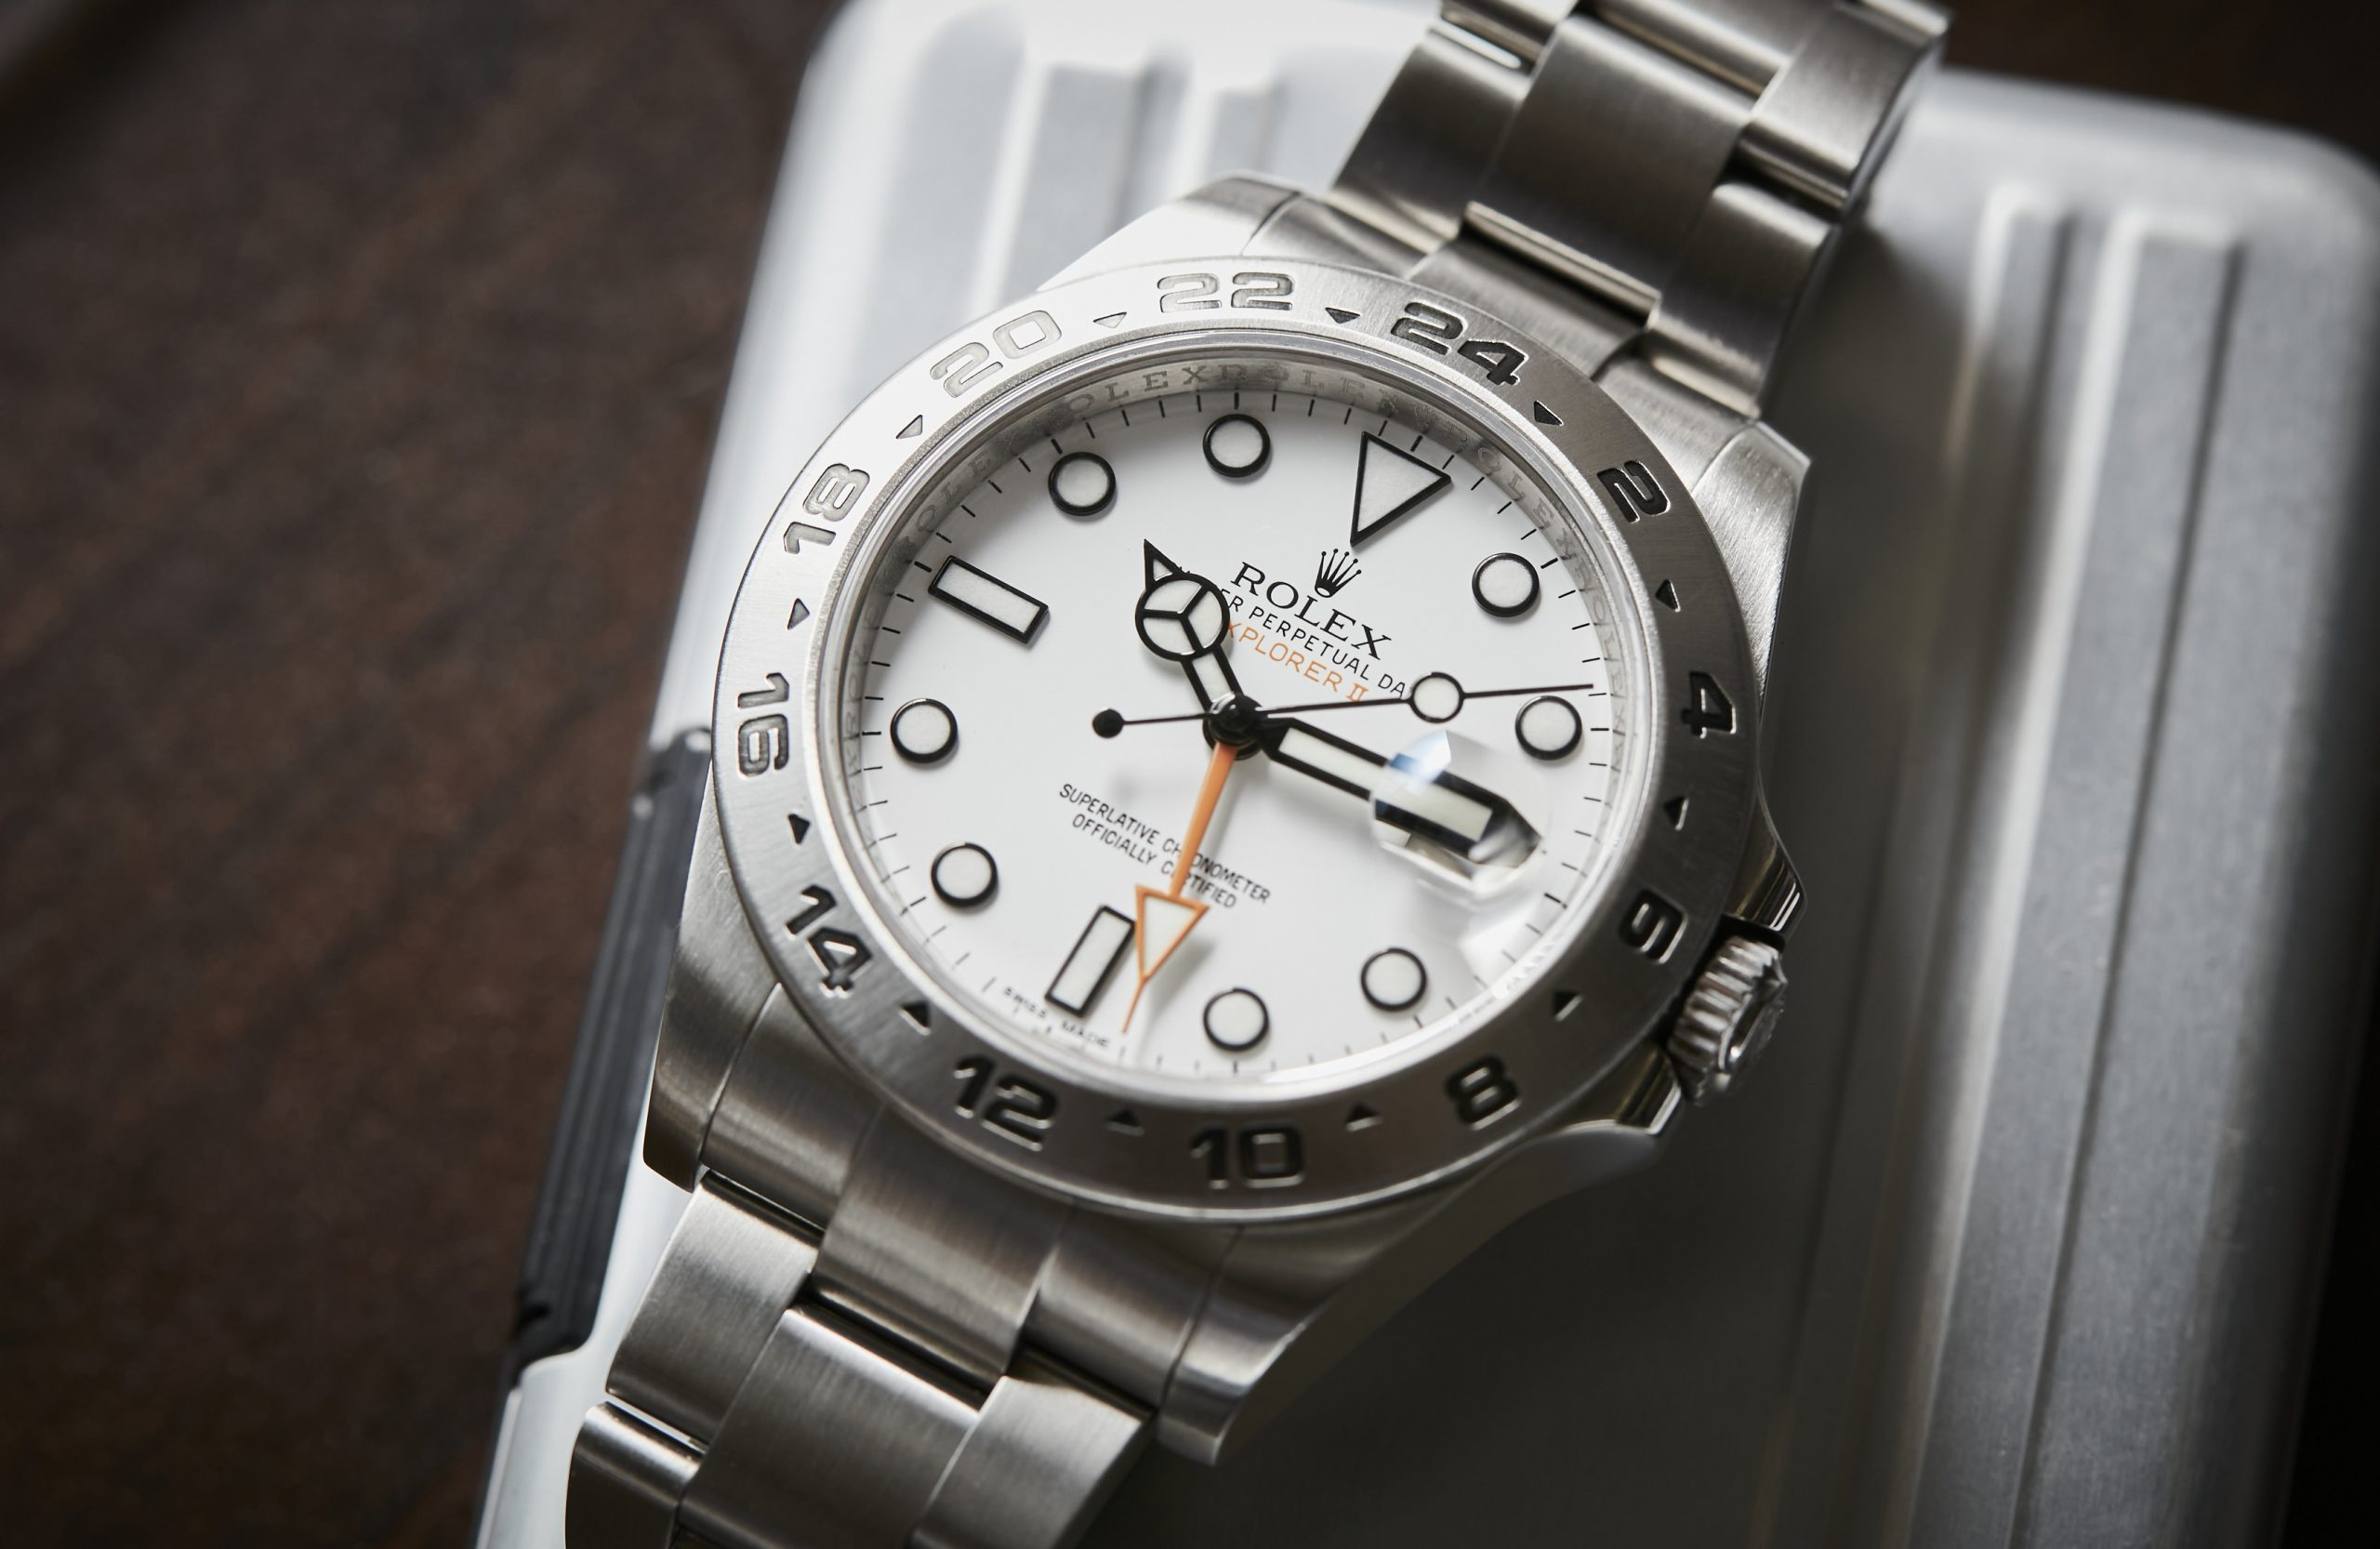 VIDEO: The Rolex Explorer II Ref. 216570 is the unsung hero in the Professional series